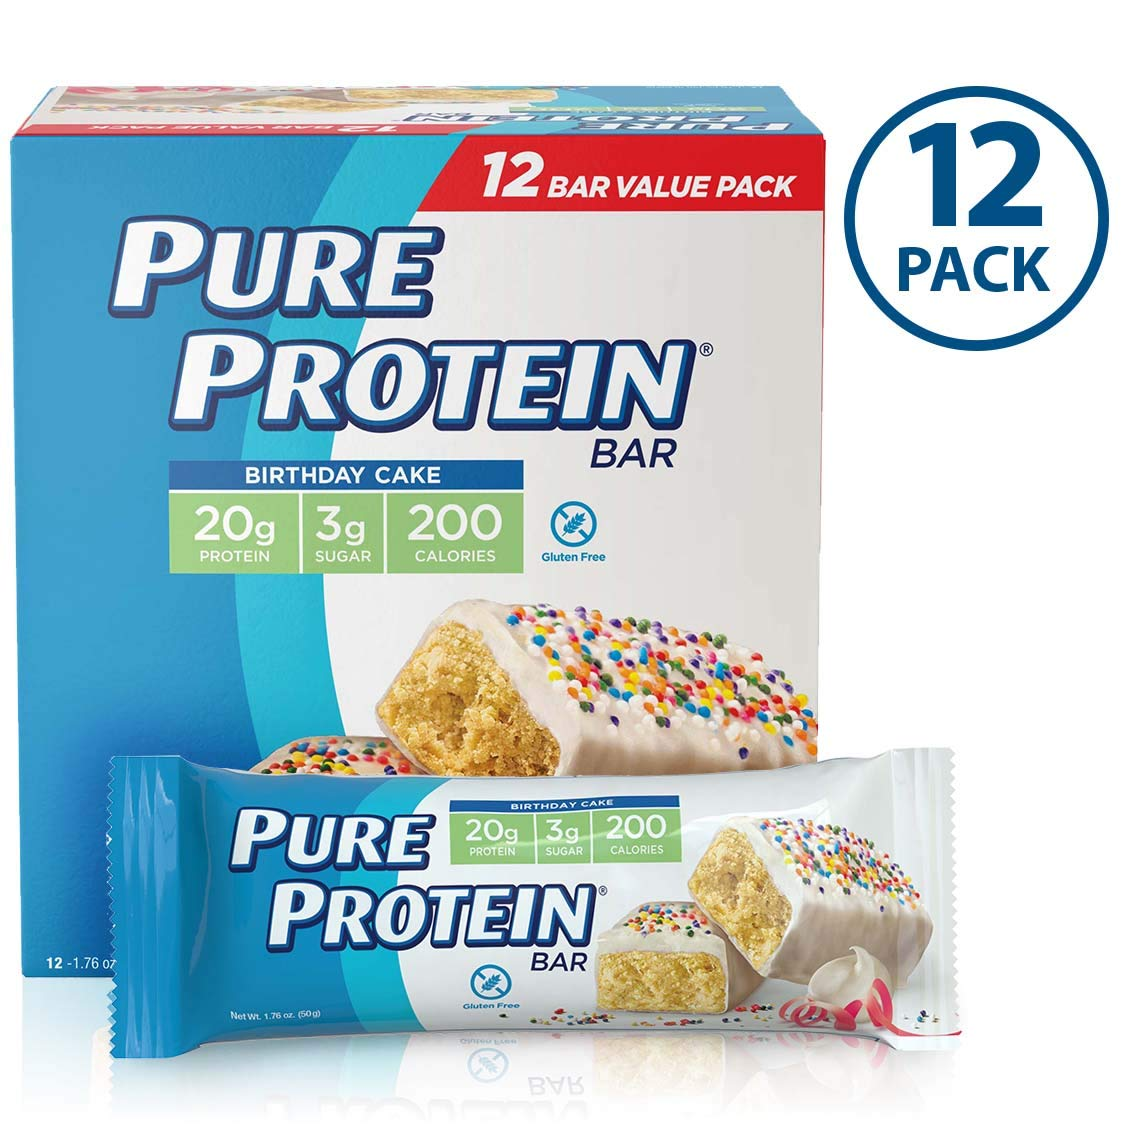 Pure Protein Bars, Birthday Cake, 1.76oz, 12 Pack by Pure Protein